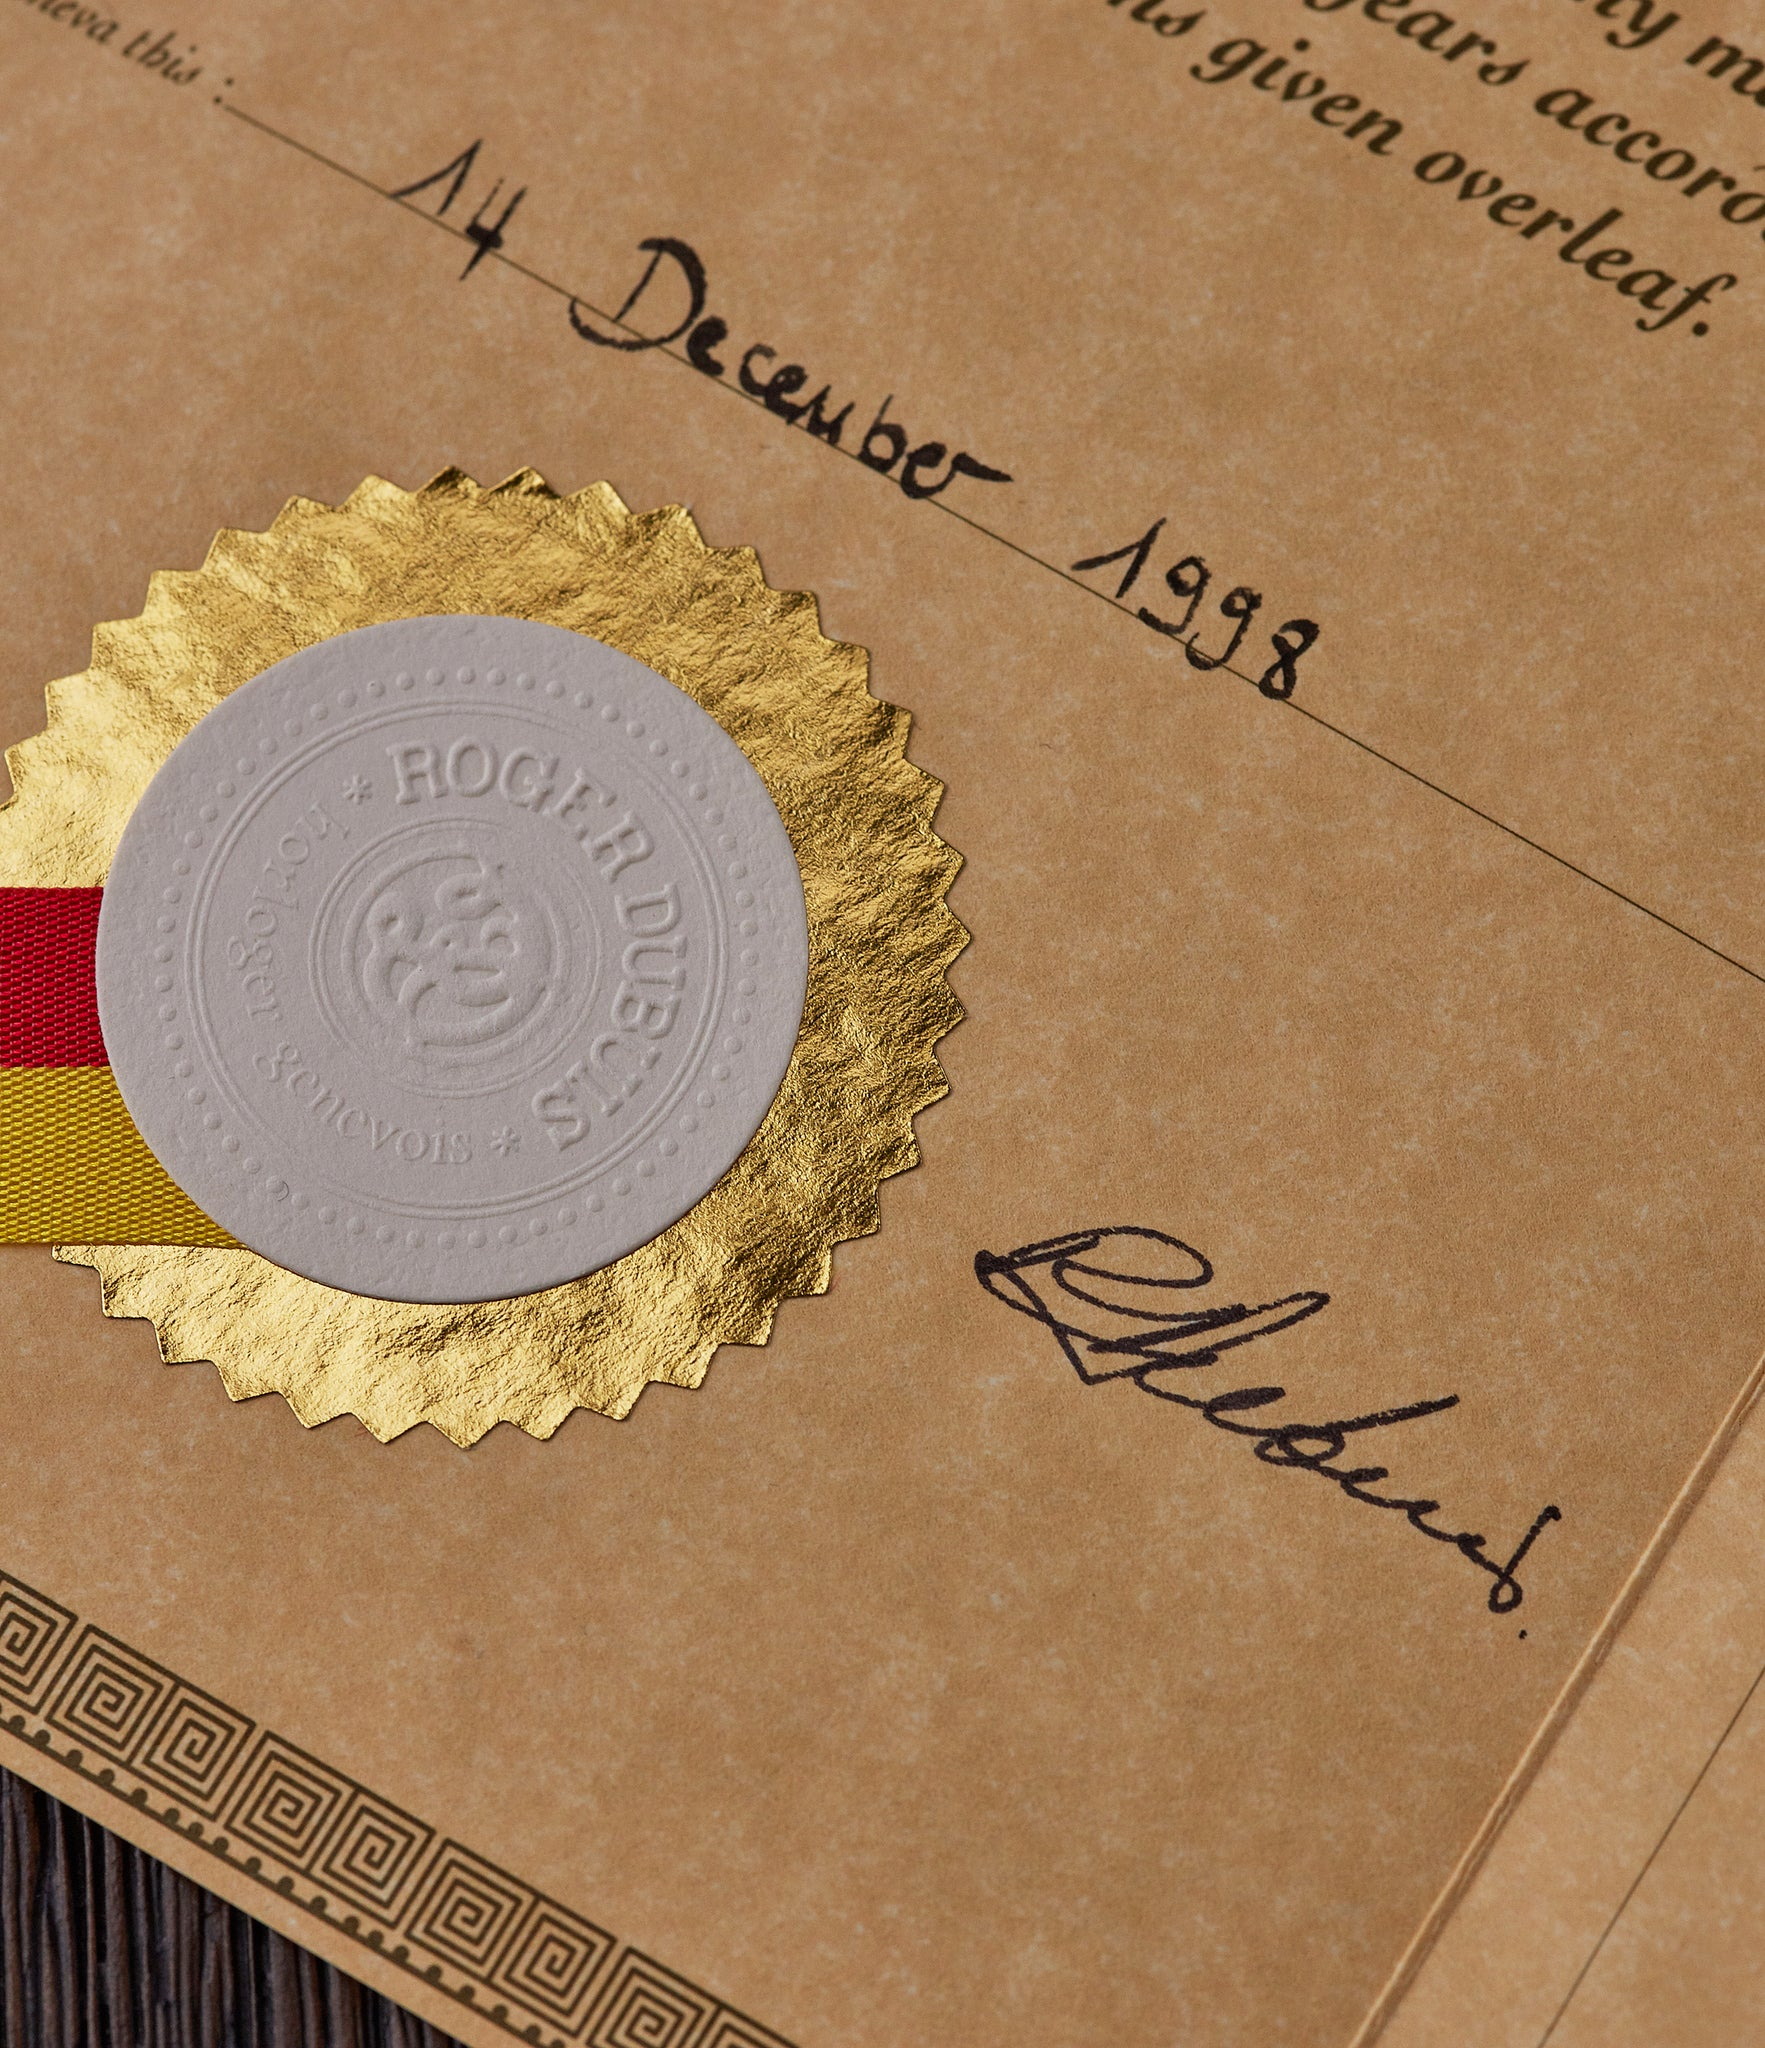 Roger Dubuis certificate of origin from 1998 showing Dubuis signature at A Collected Man London